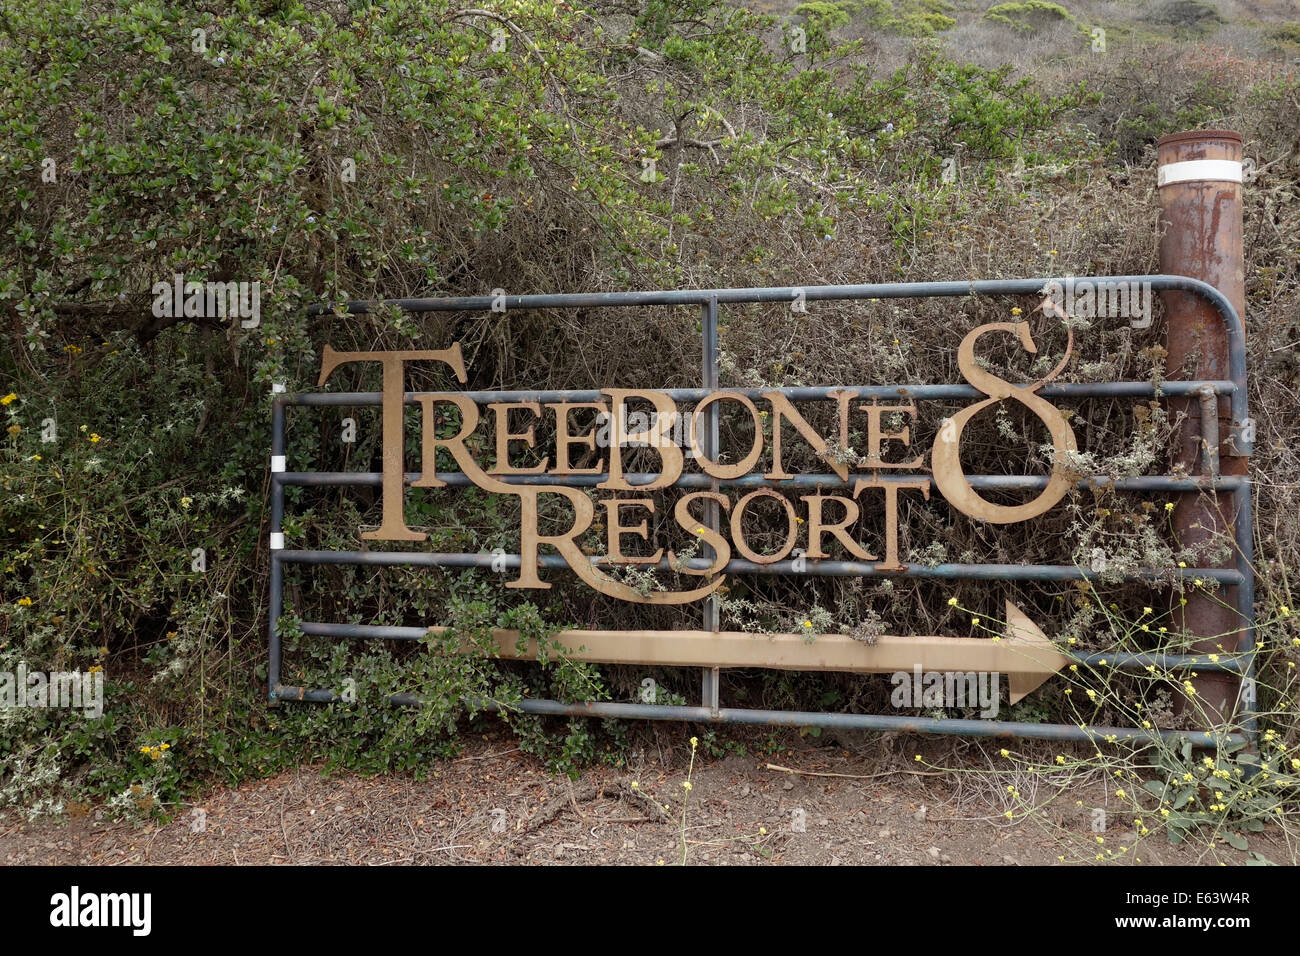 Treebones Resort is a 'glamping' campground in Big Sur